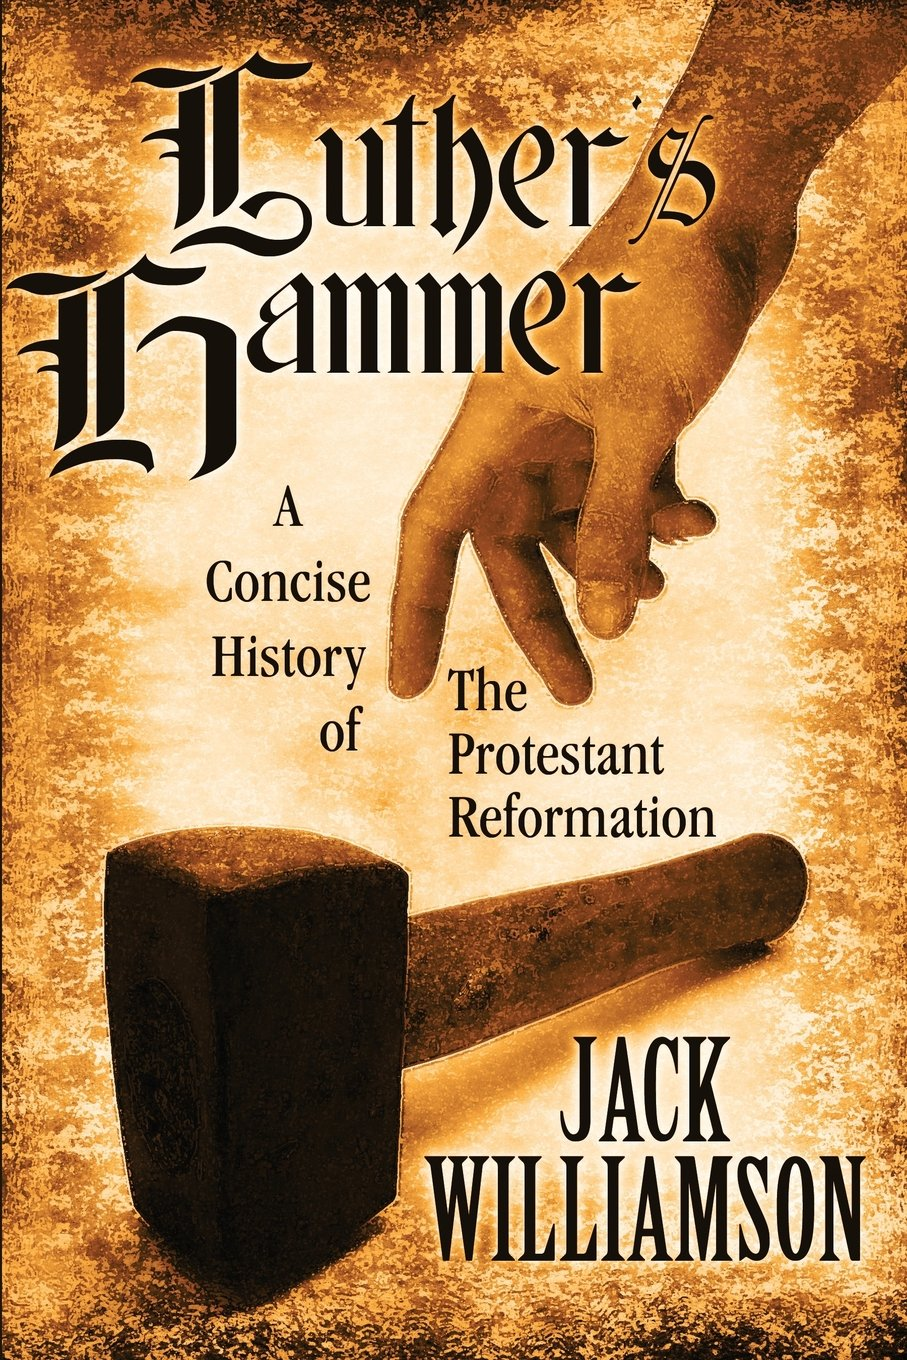 Luther's Hammer: A Concise History of The Protestant Reformation PDF